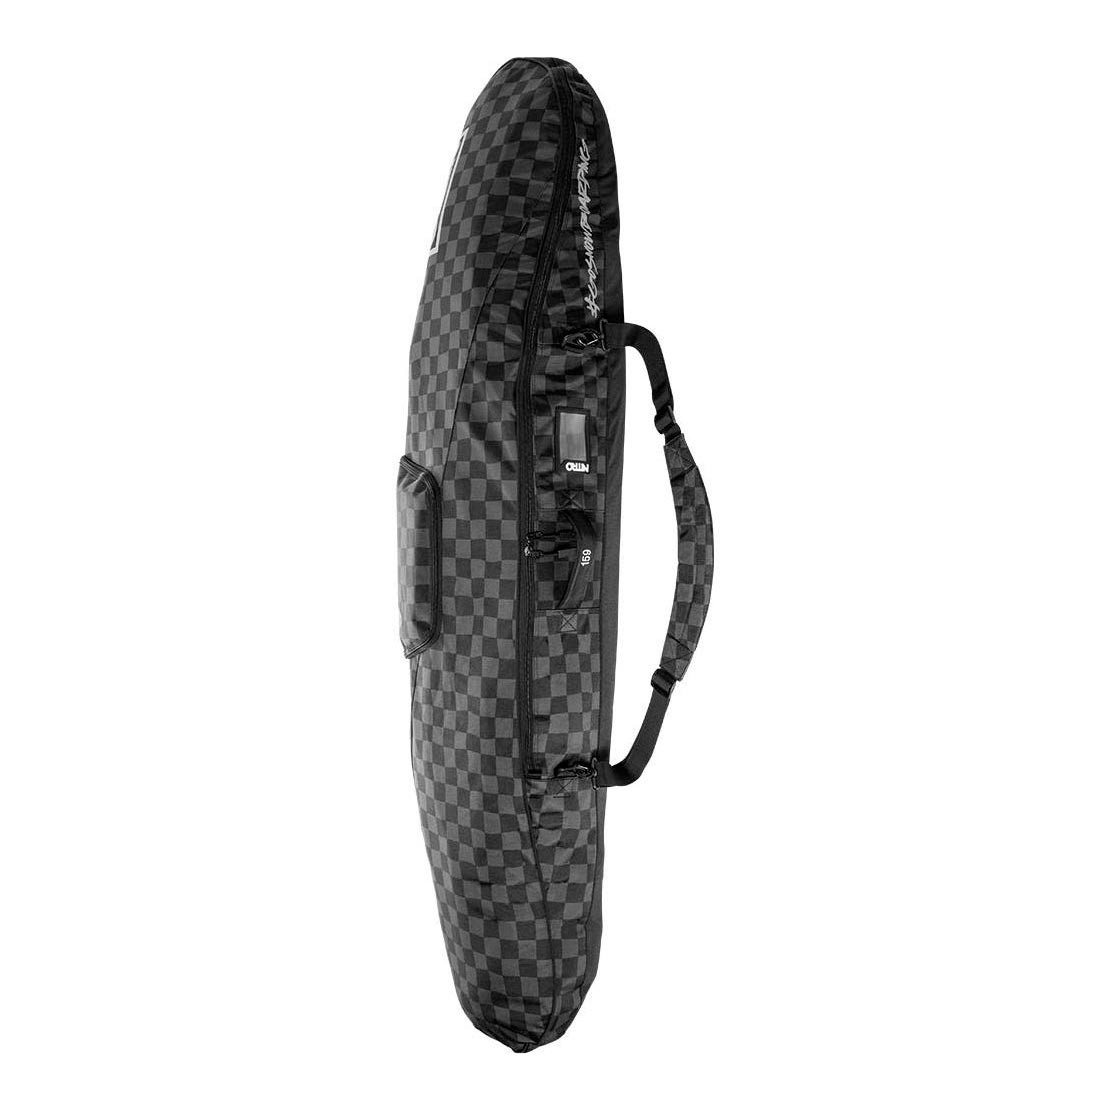 Obal na snowboard Nitro Sub Board Bag checker